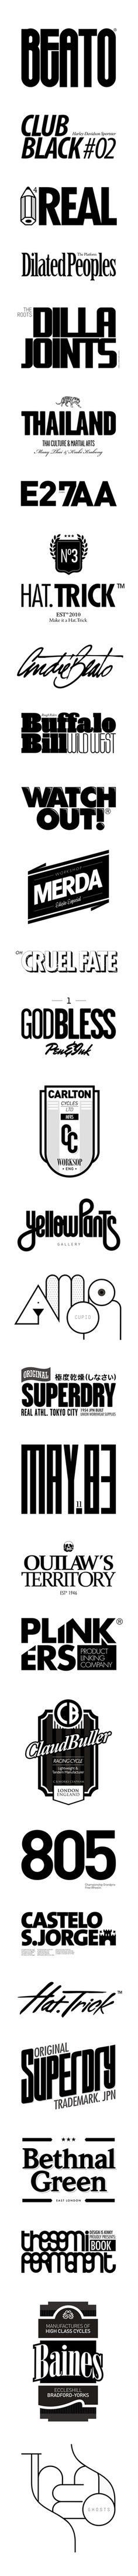 Round by André Beato, via Behance. So much awesomesauce here. Typography Prints, Graphic Design Typography, Branding Design, Design Logos, Lettering, Letter Logo, Design Reference, Art Logo, Graphic Design Inspiration